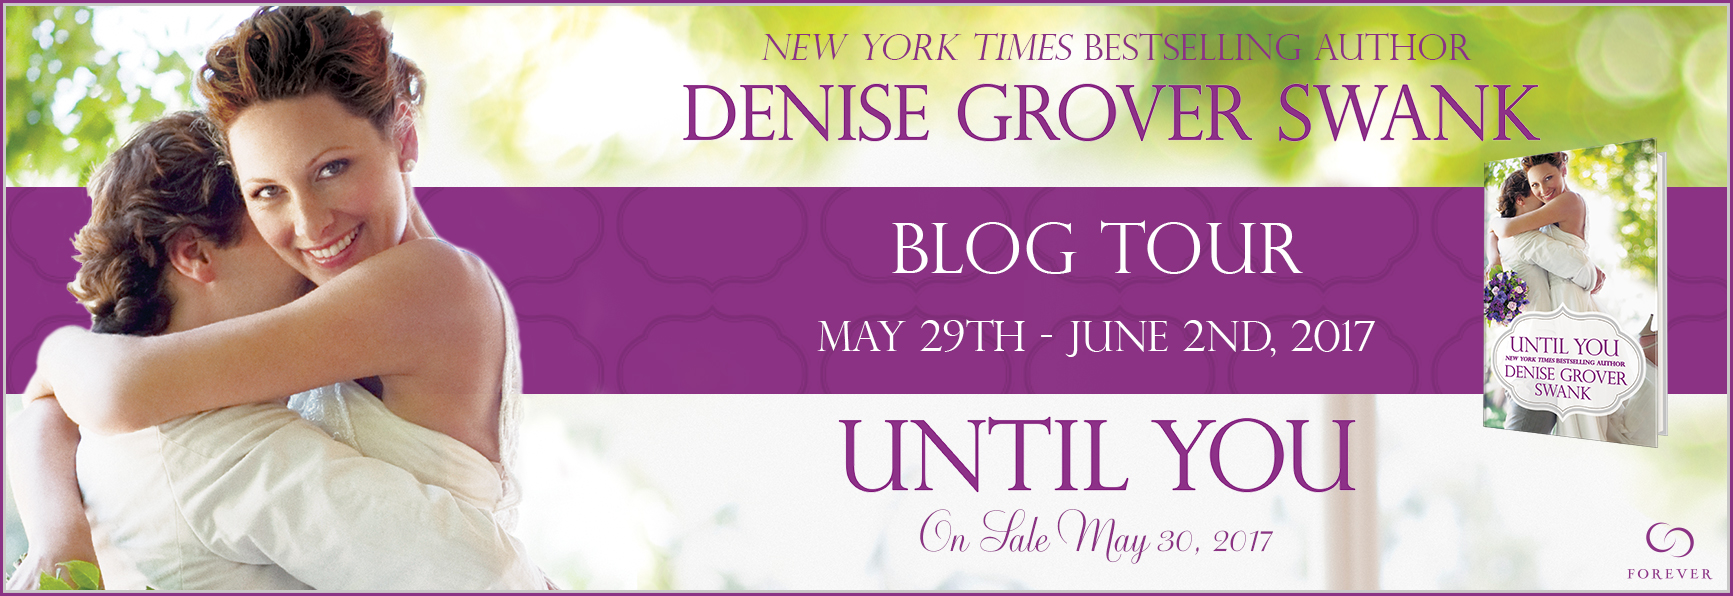 SPOTLIGHT/GIVEAWAY: 'Until You' by Denise Grover Swank